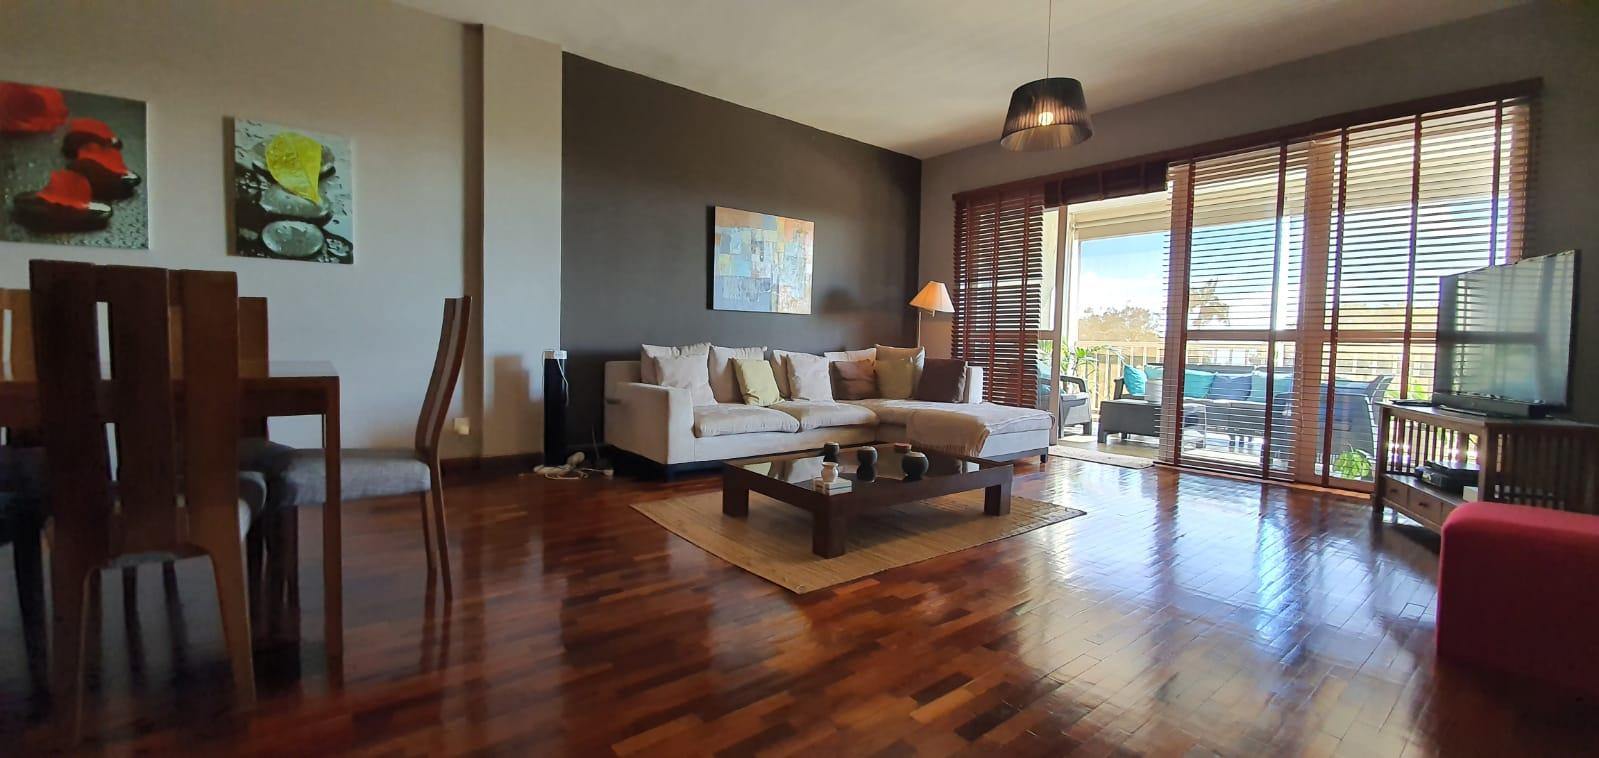 FOR SALE – Magnificent unfurnished apartment of 153 m2 is located in a high-end residence in a prestigious avenue of Floréal